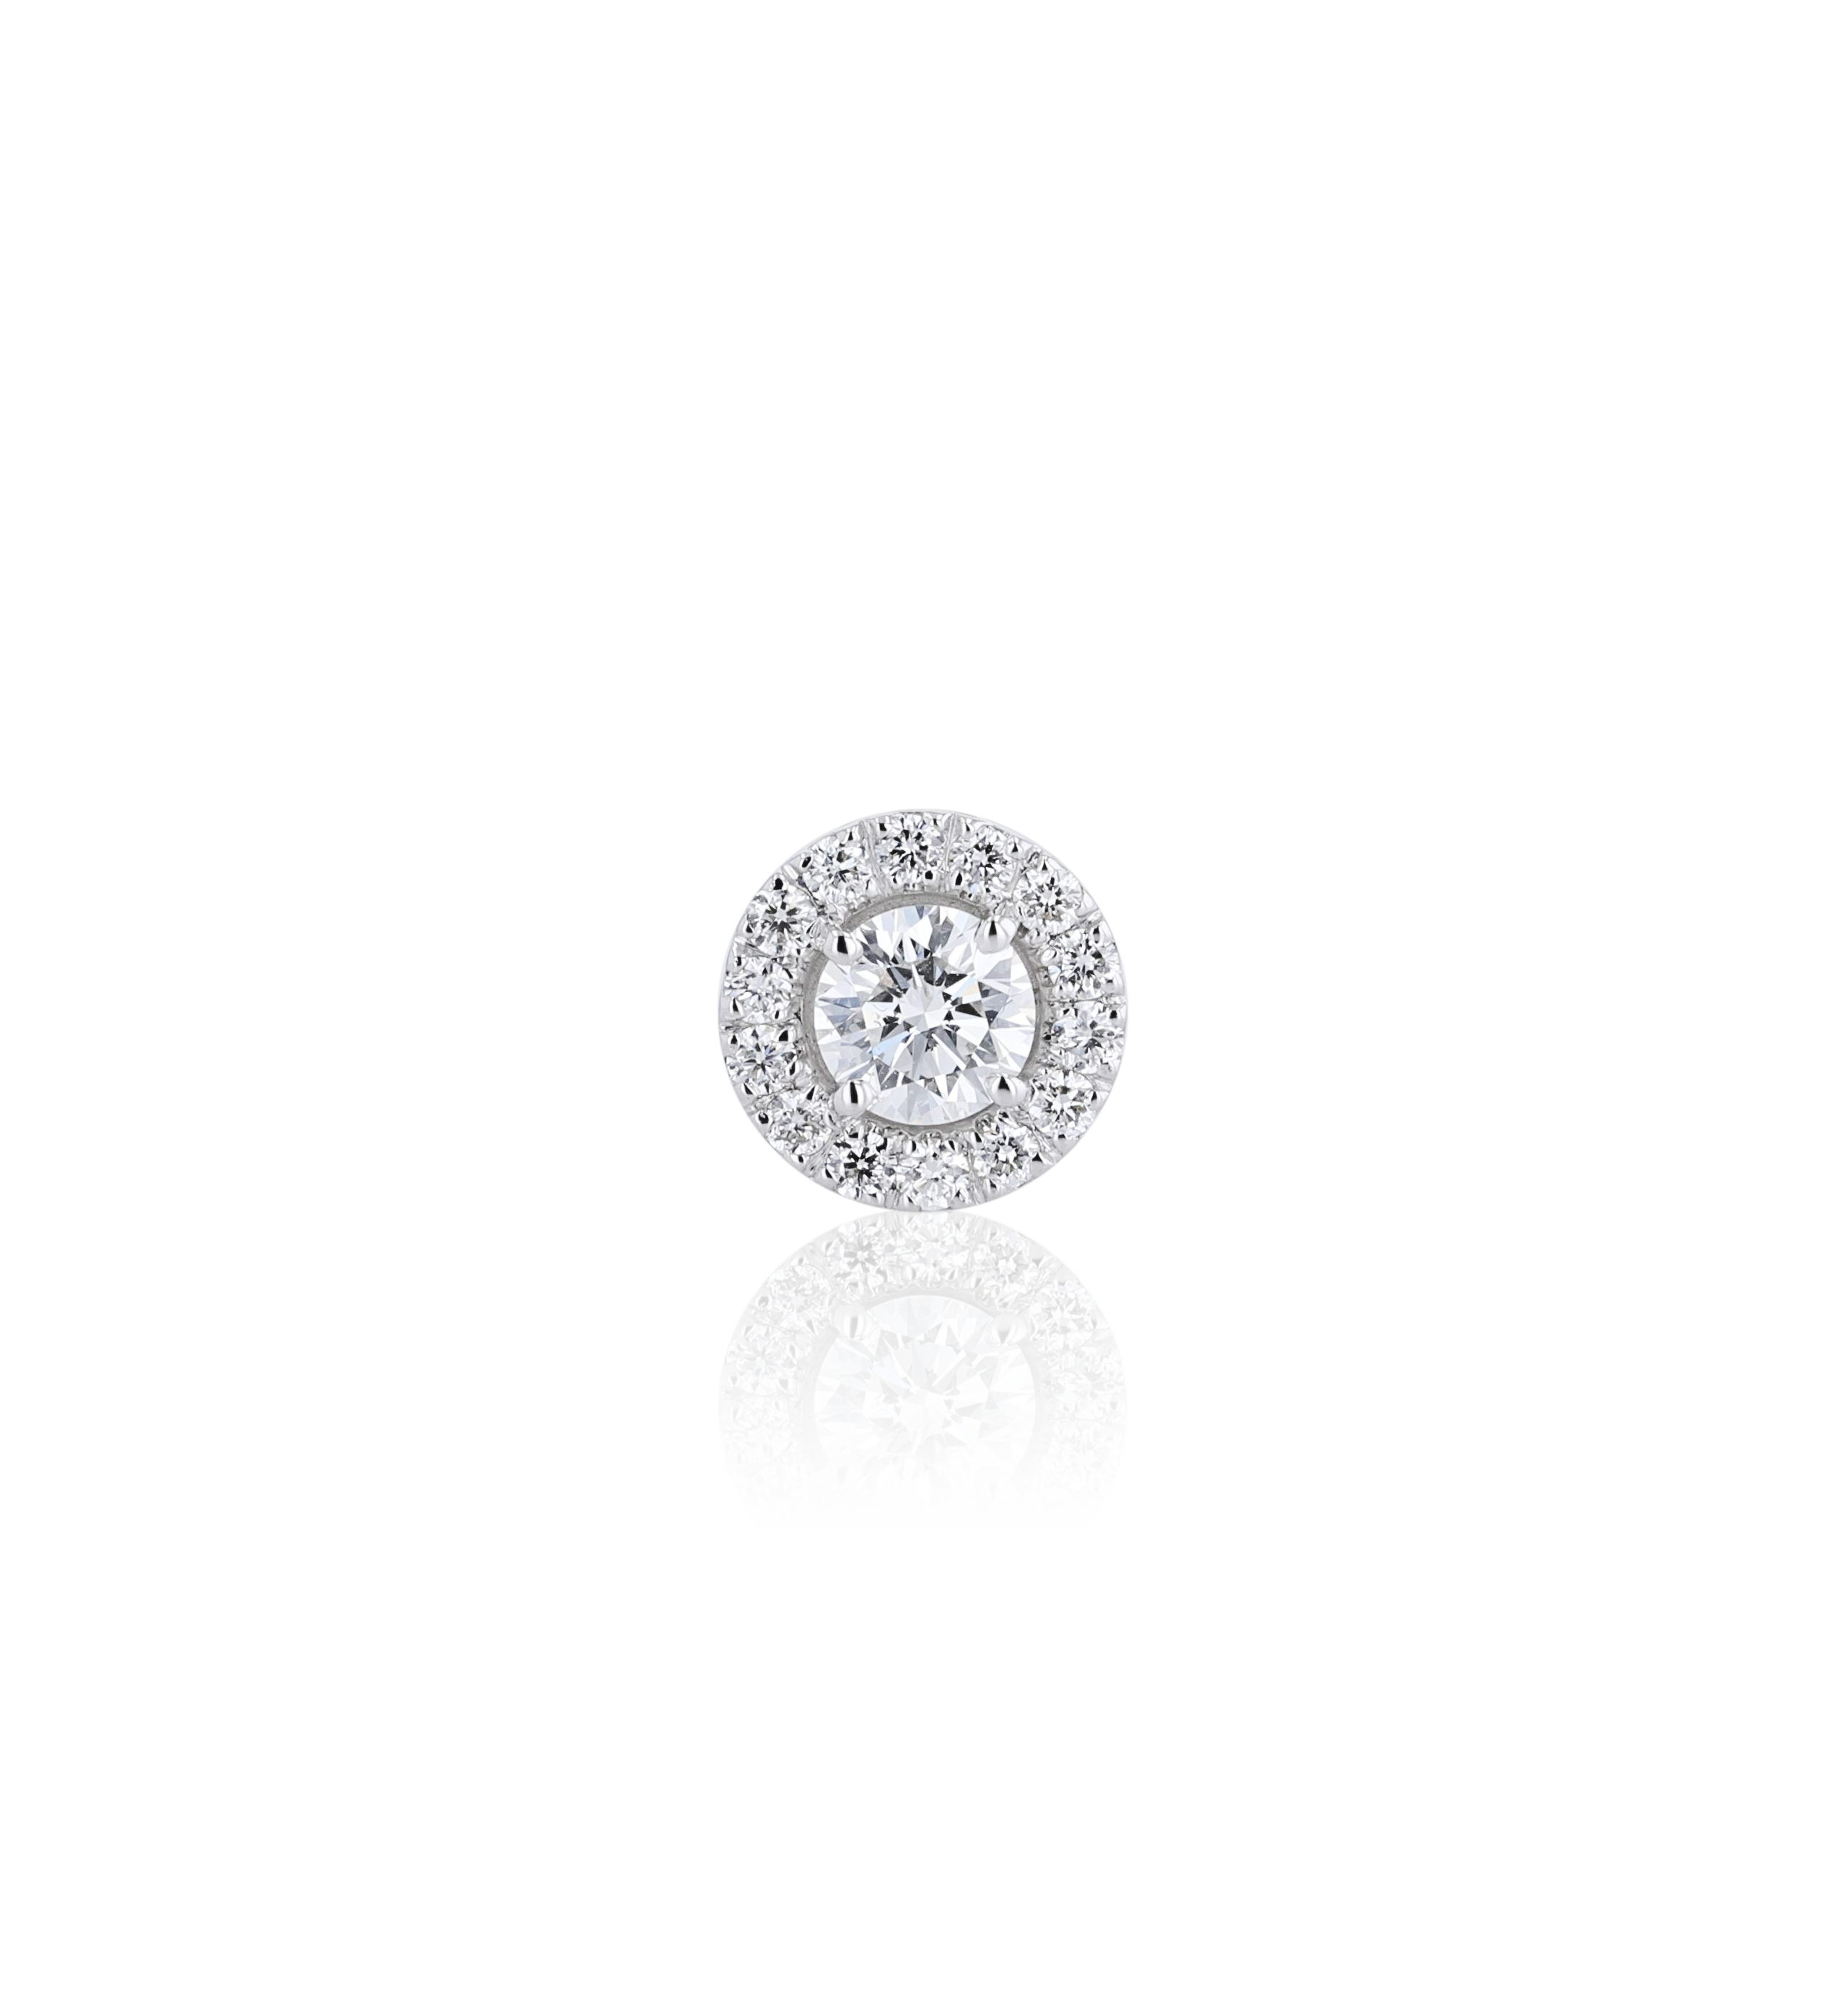 Halo Round Diamond Stud Earrings in 18K White Gold 0.58 CT